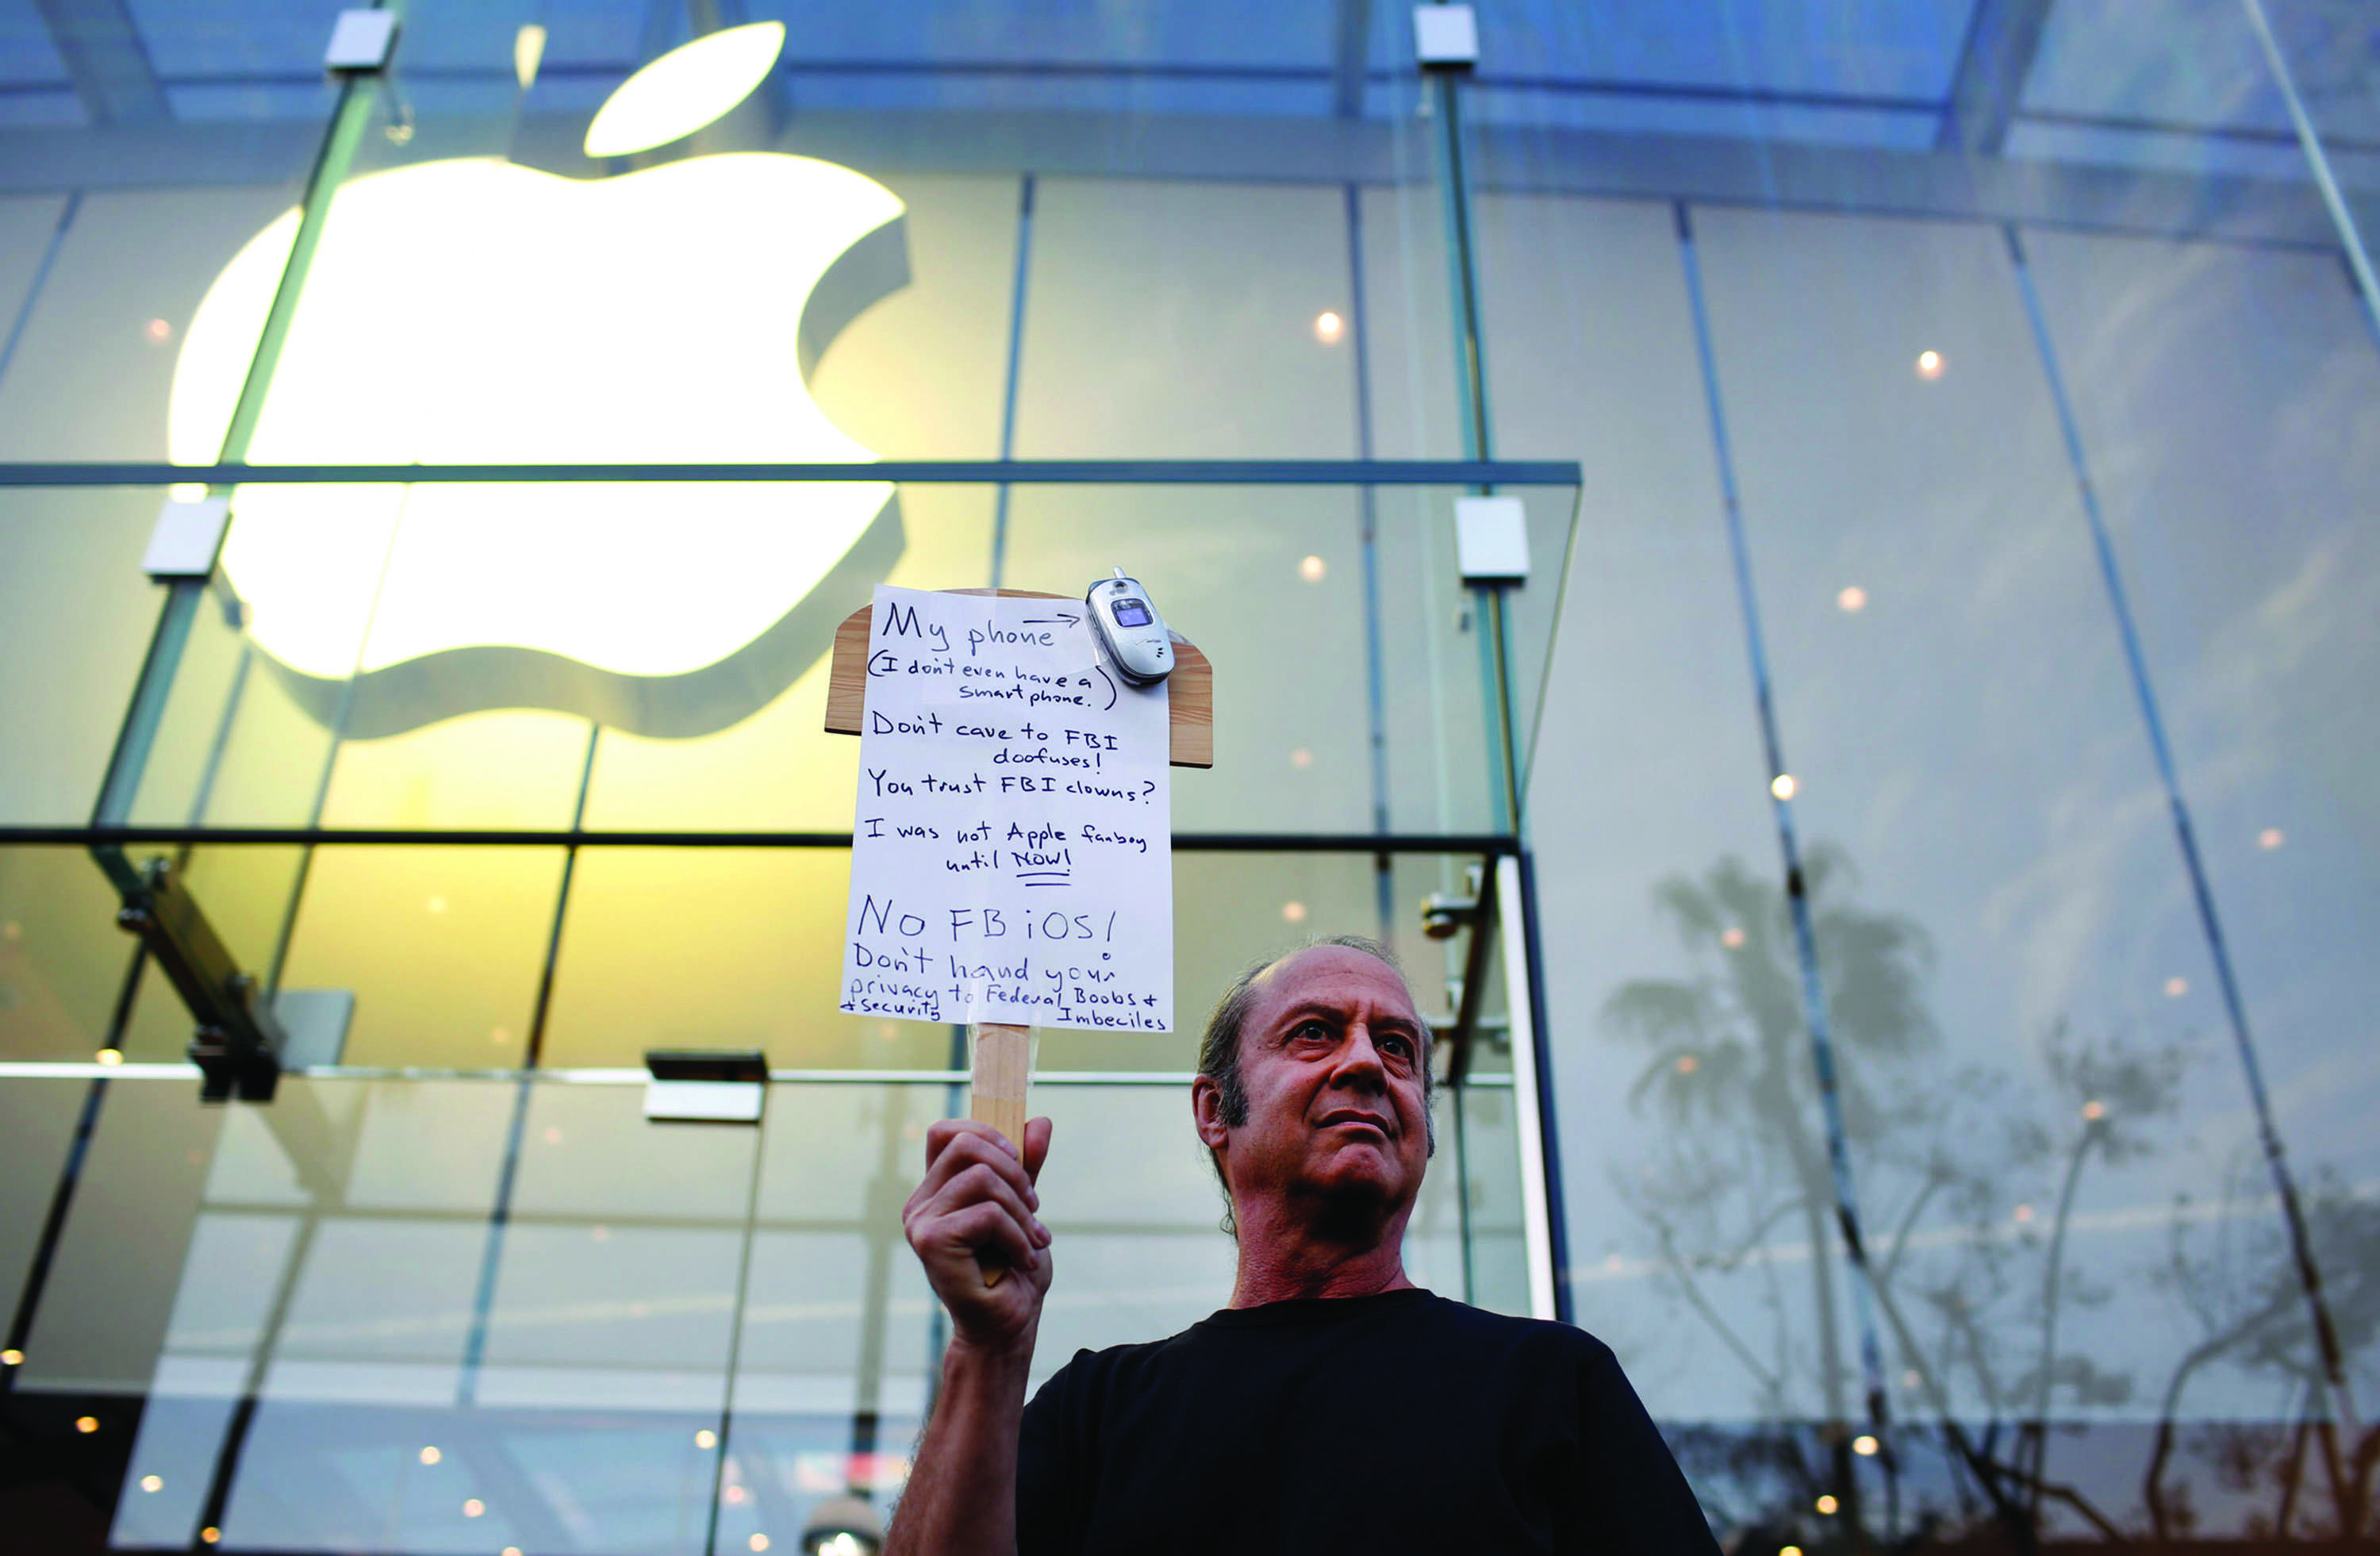 Should Apple allow the FBI to access user information?